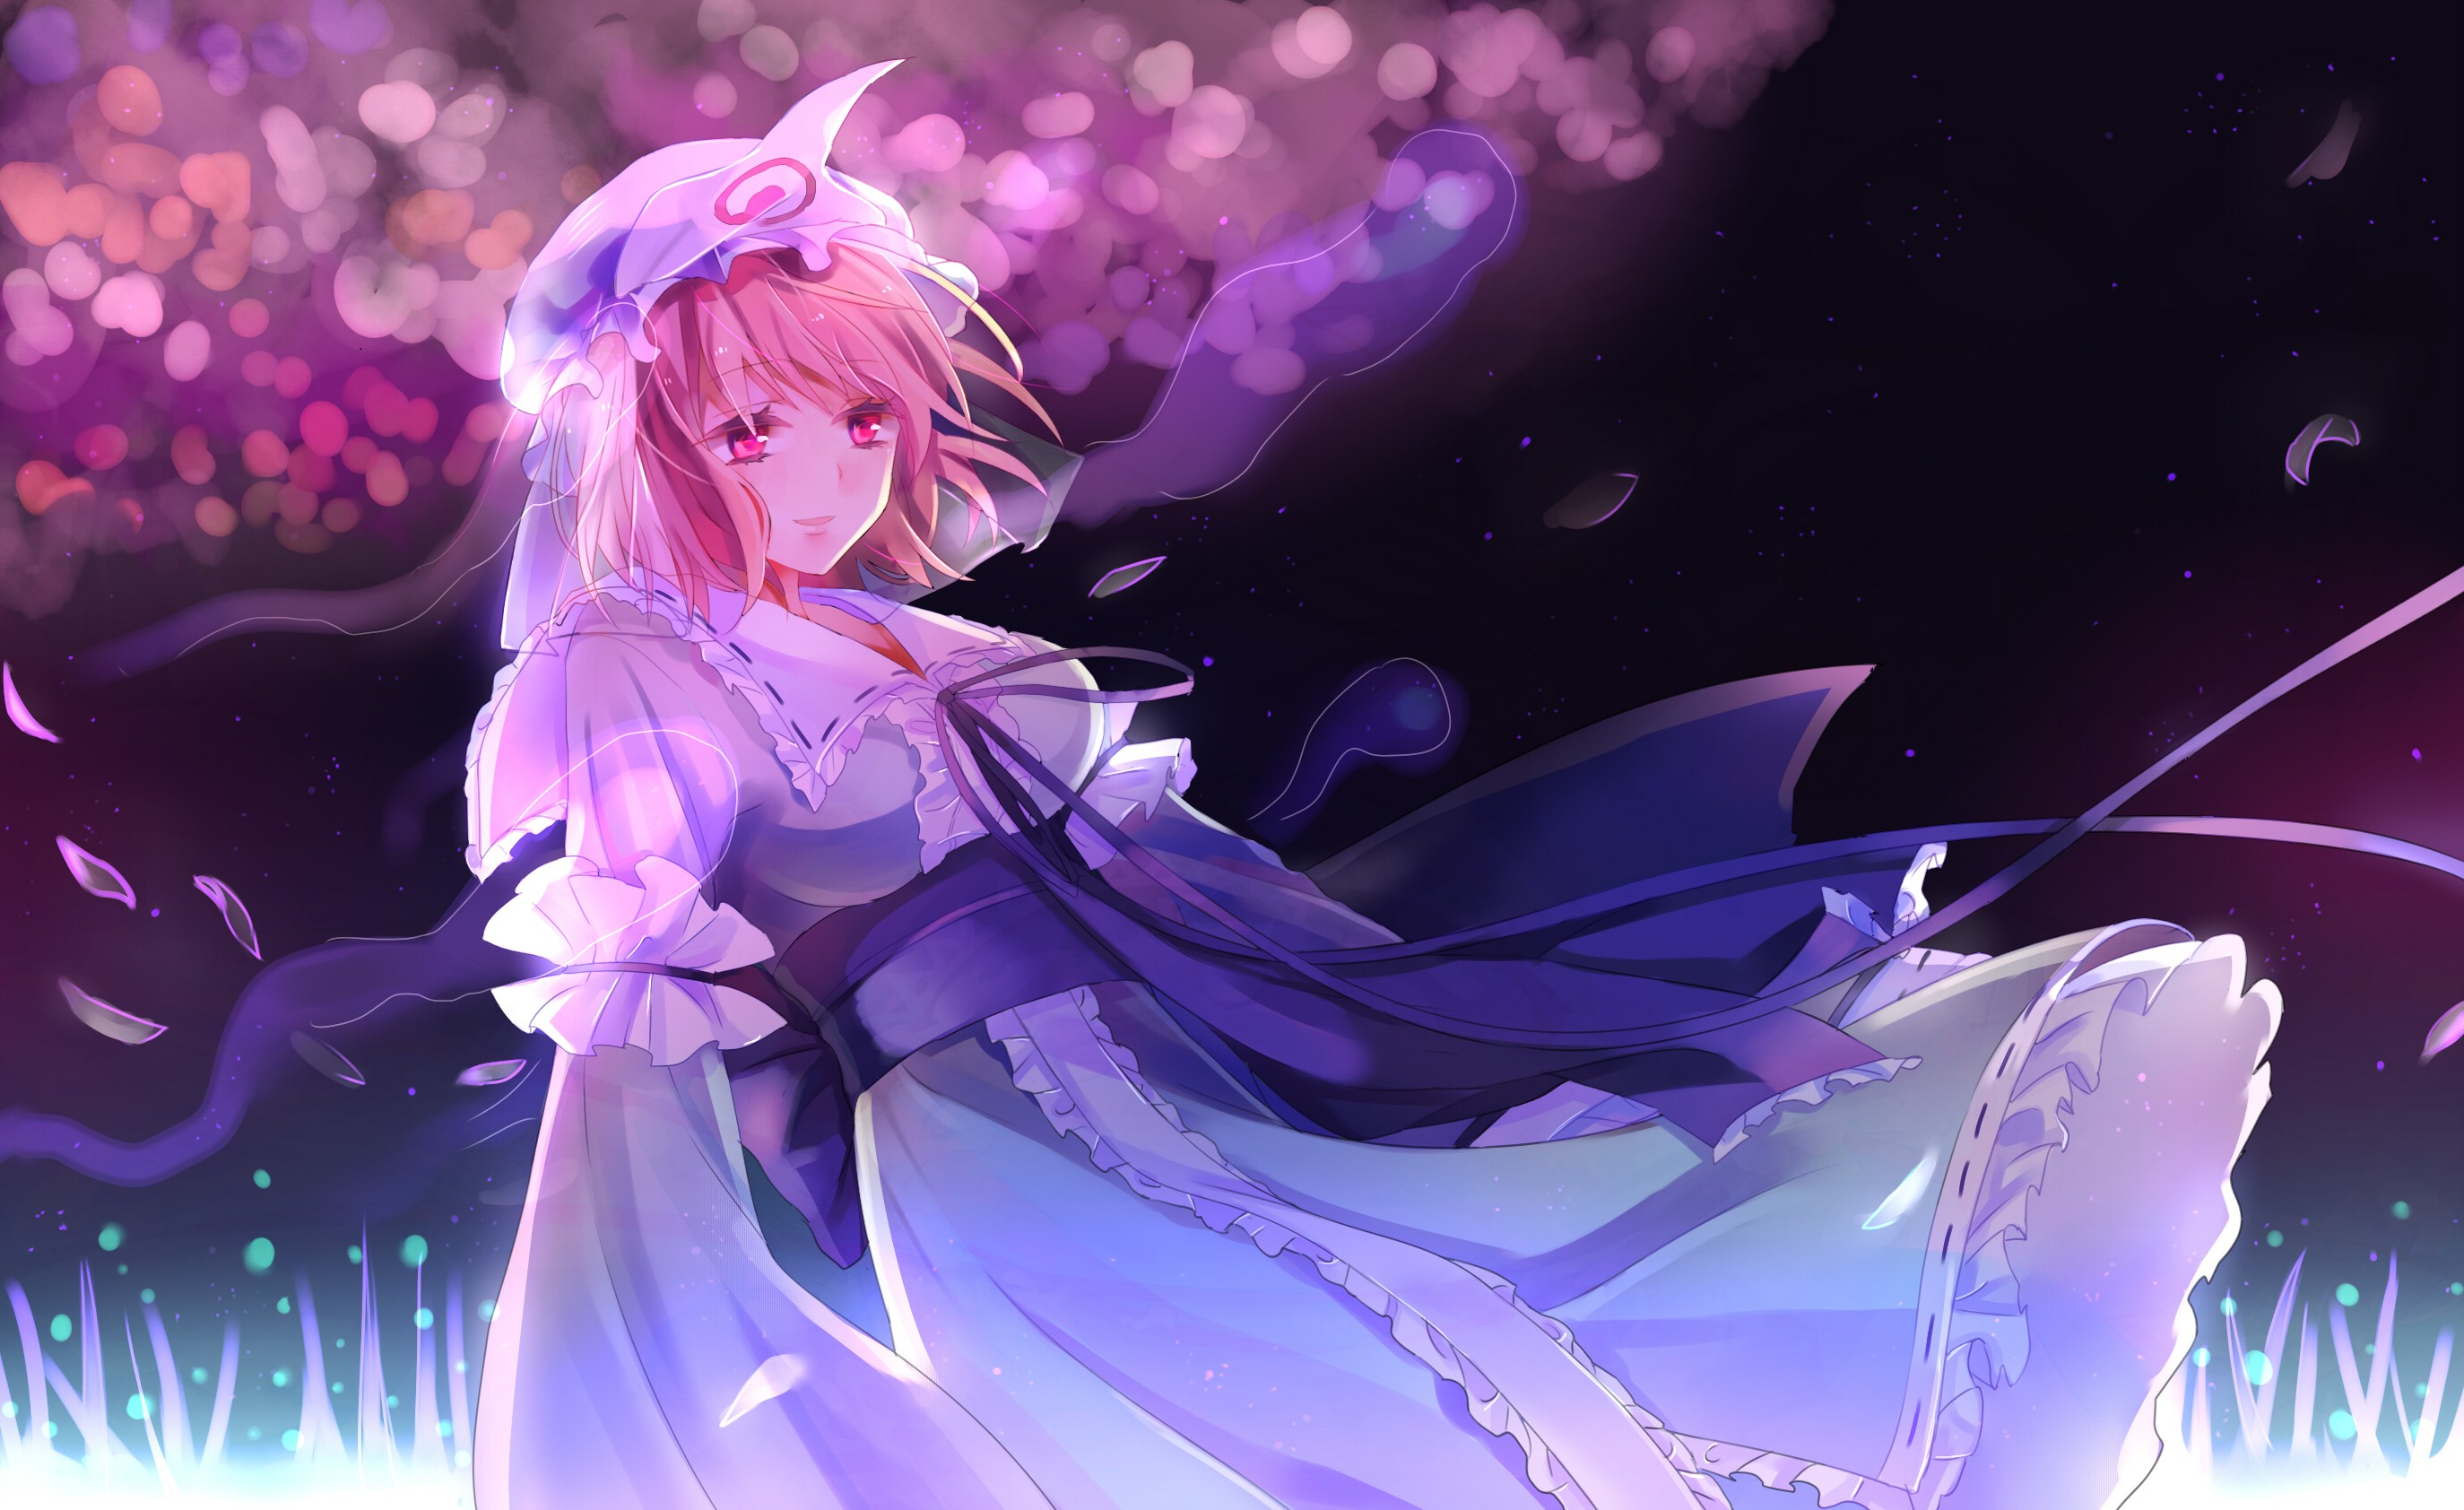 Anime Piano Girl Wallpaper Wallpaper Illustration Anime Girls Touhou Saigyouji